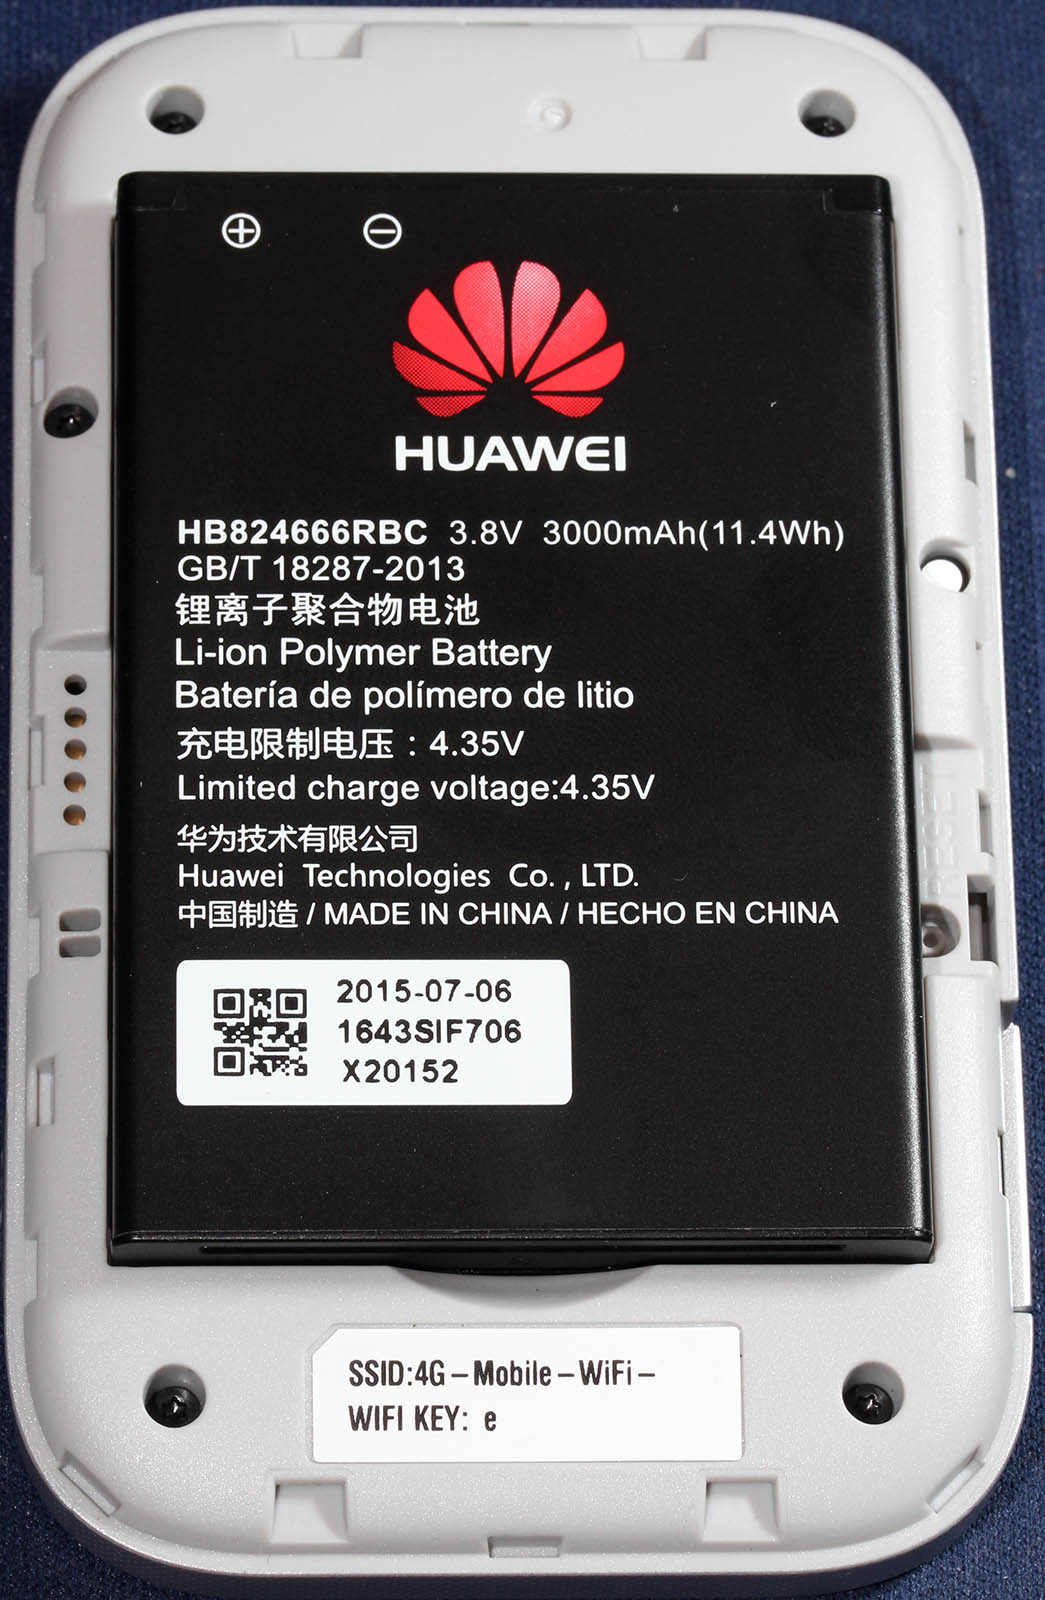 Huawei - Hacker's ramblings